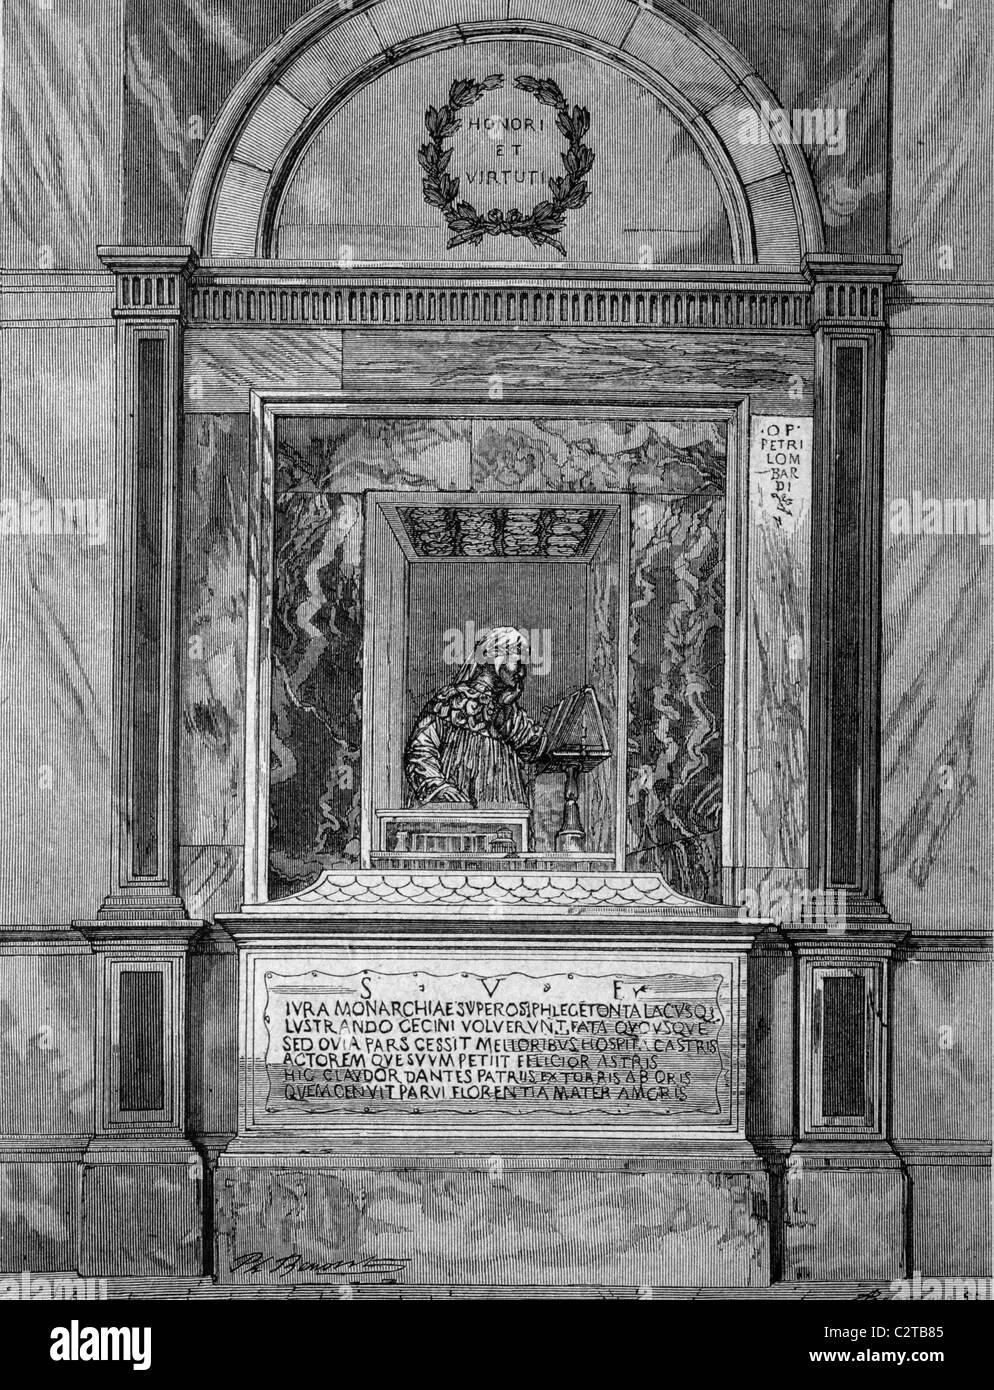 Tomb of Dante Allighieri in the grave chapel in Ravenna, Italy, historical illustration, circa 1886 - Stock Image